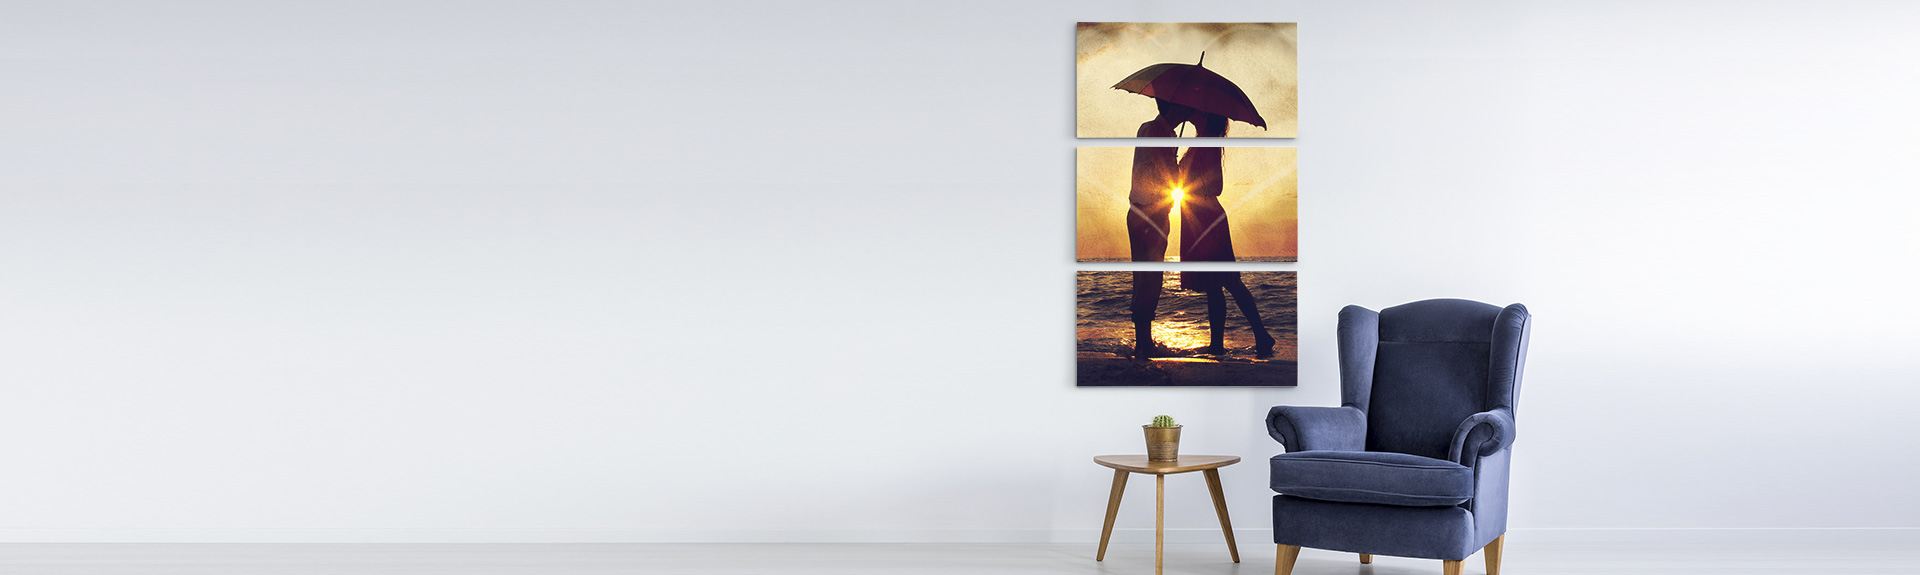 3 PANEL CANVAS PRINTS